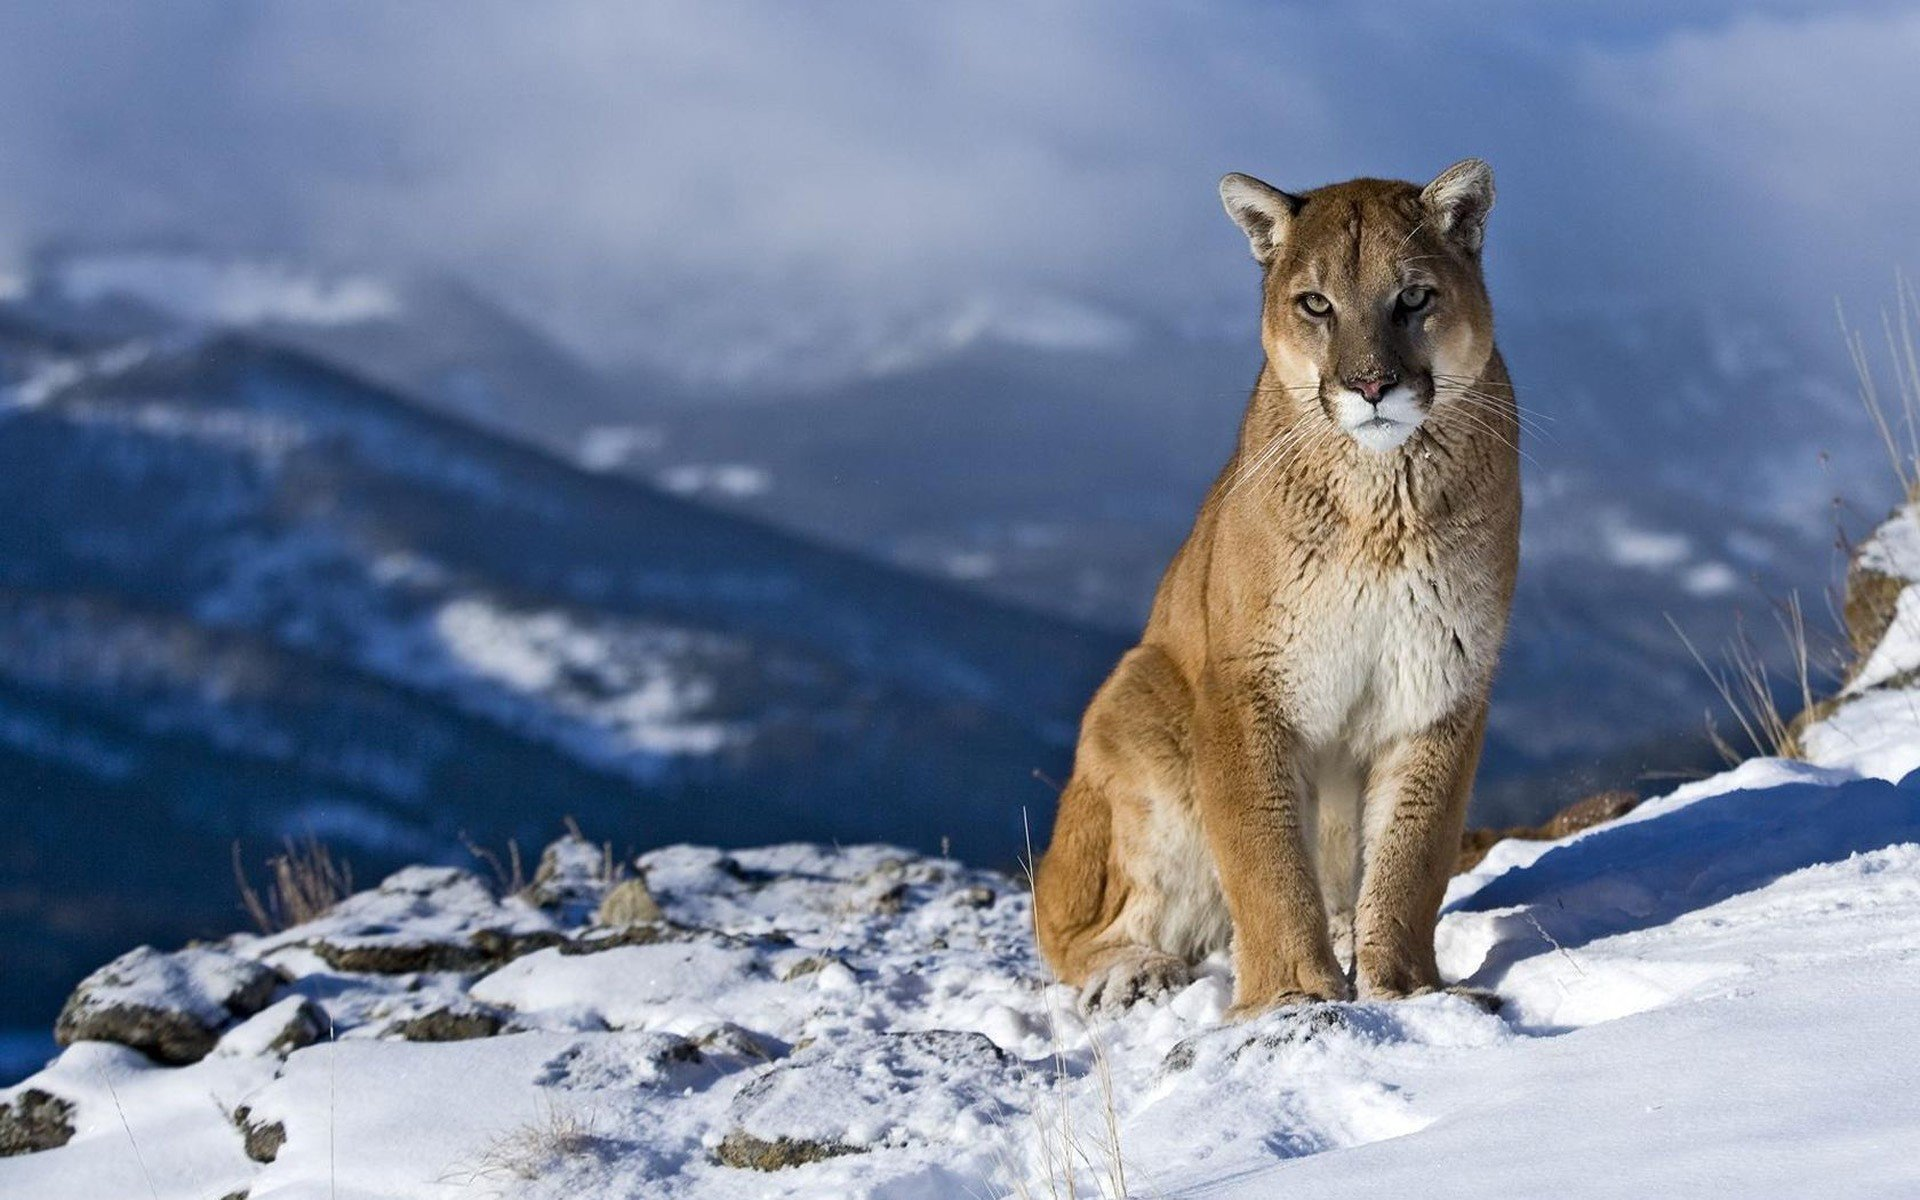 Download hd 1920x1200 Cougar PC background ID:81728 for free